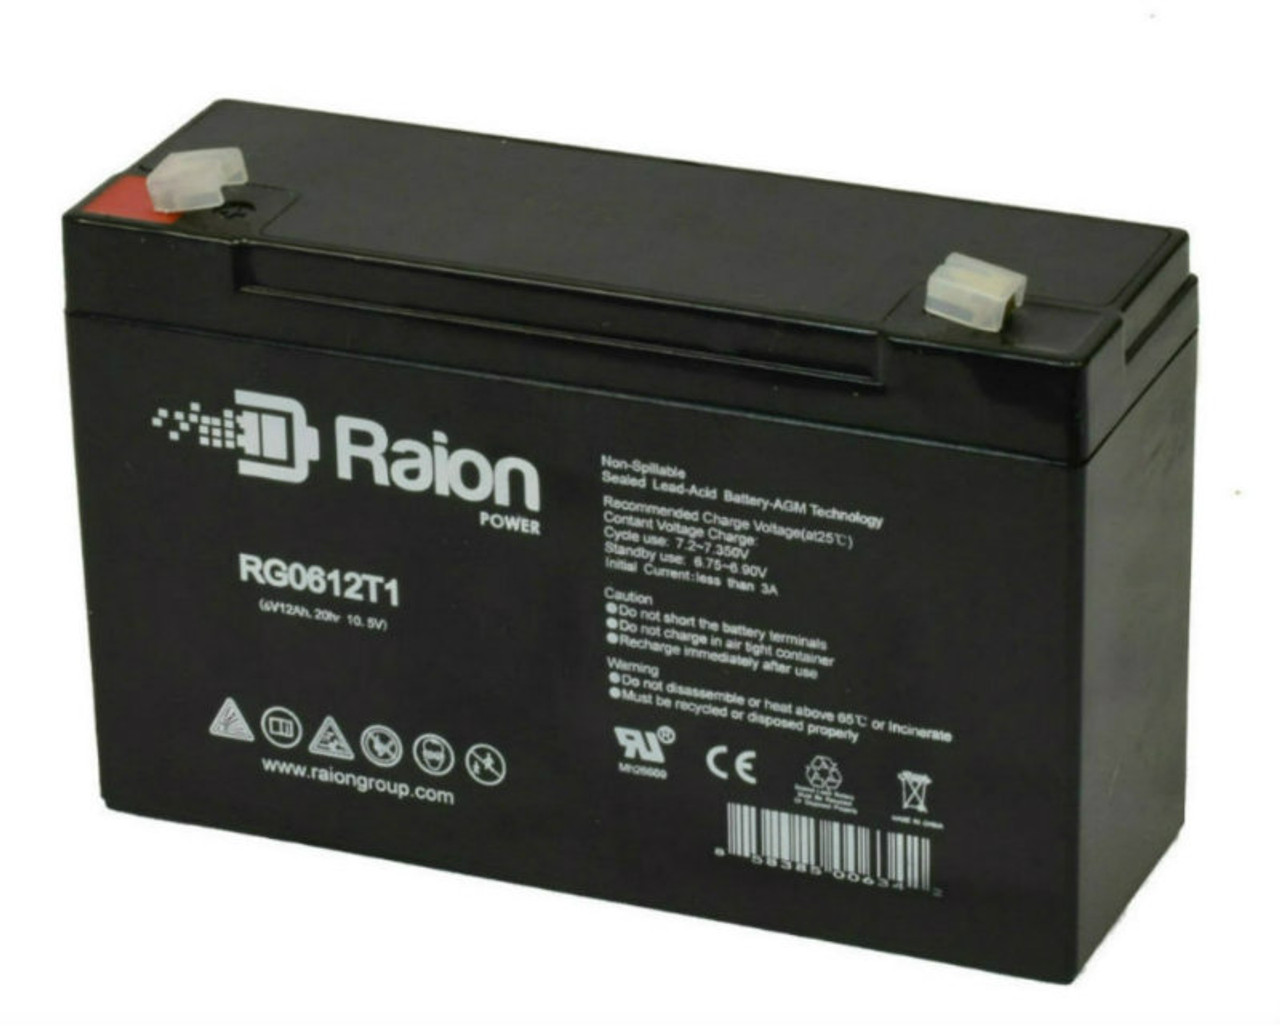 Raion Power RG06120T1 Replacement Battery Pack for Chloride NMF501Q2 emergency light